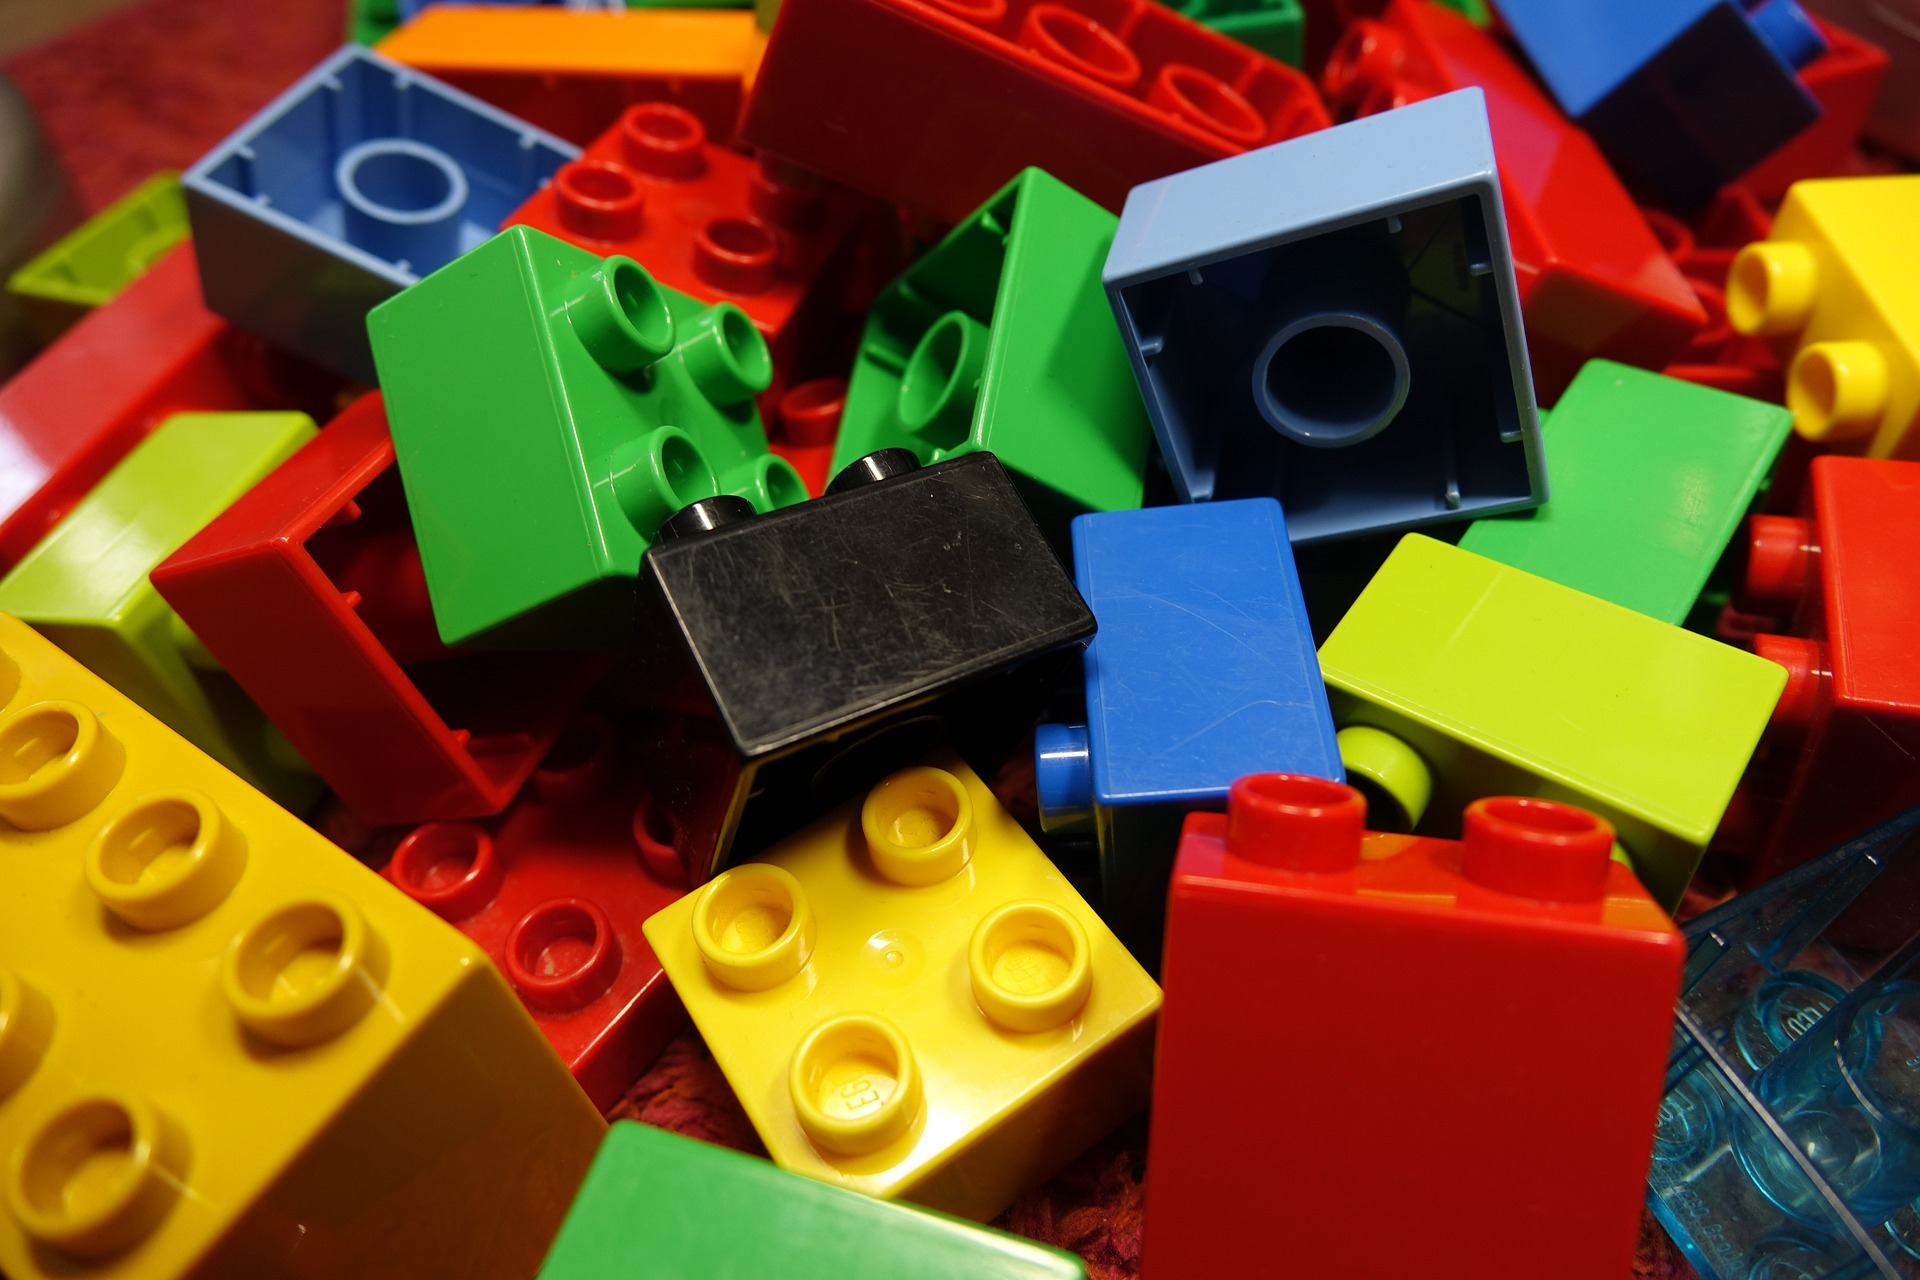 S.T.E.A.M. Thursday: LEGOS®